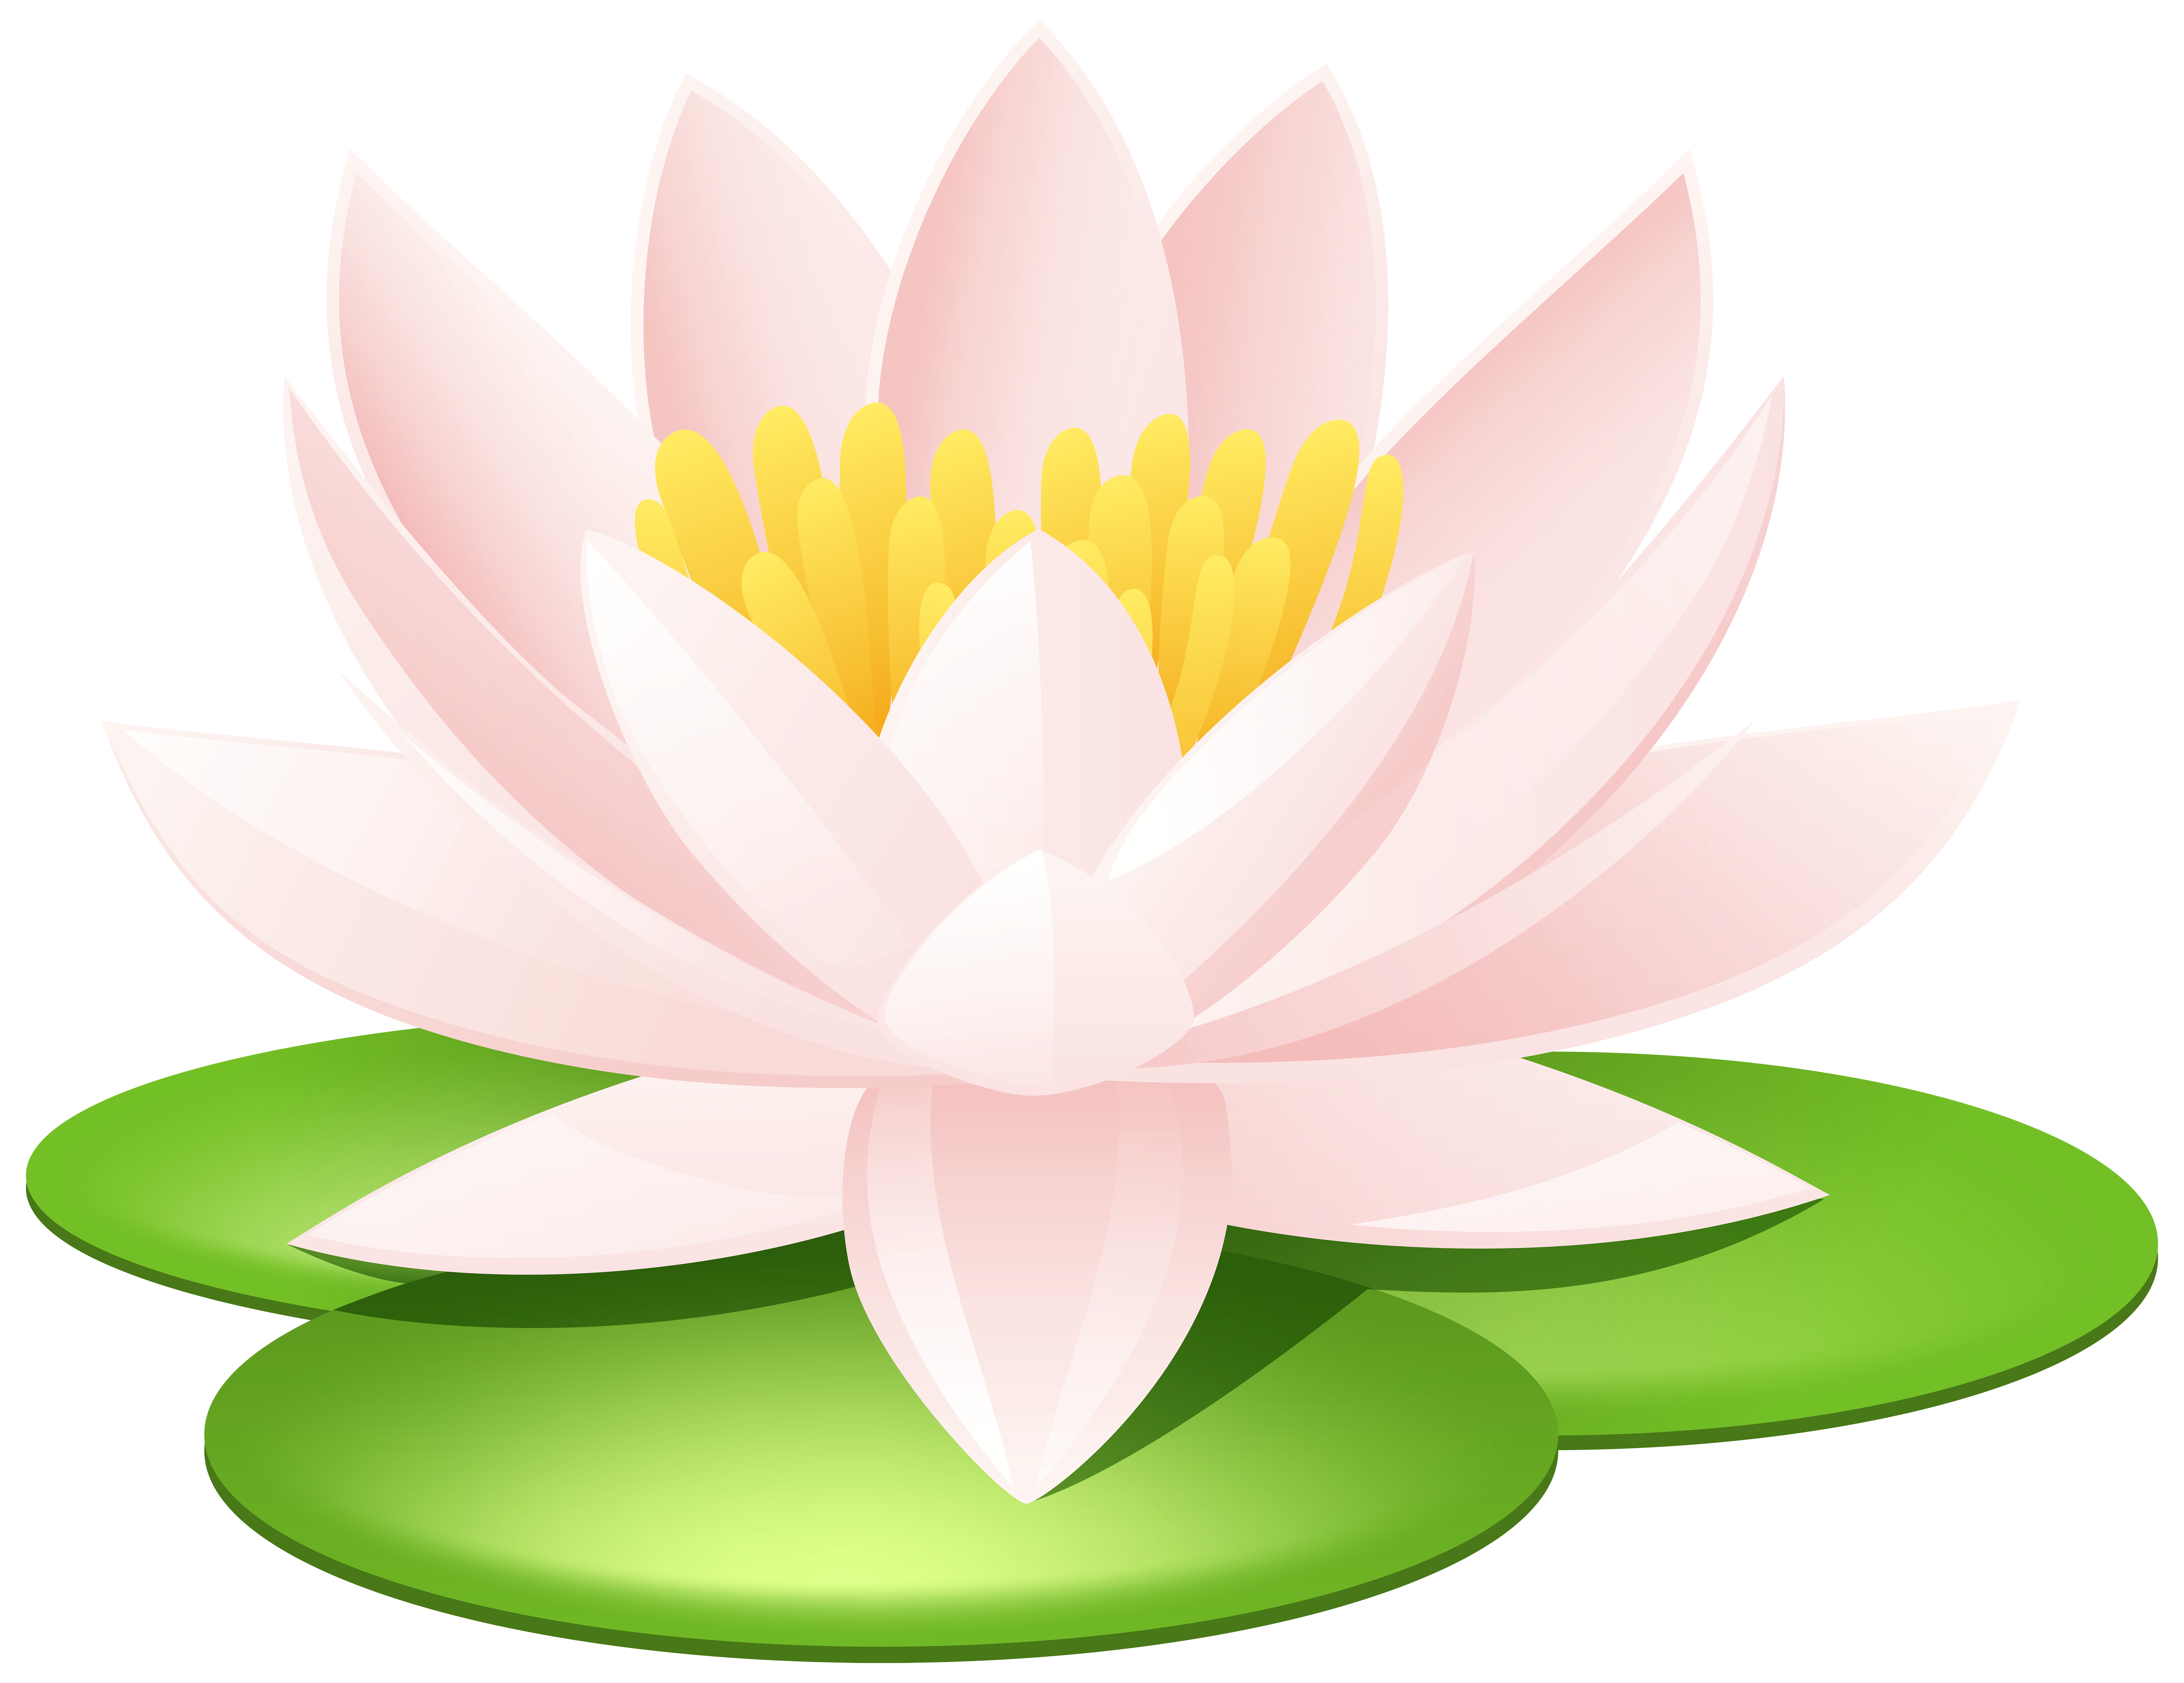 Water Lily clipart #2, Download drawings